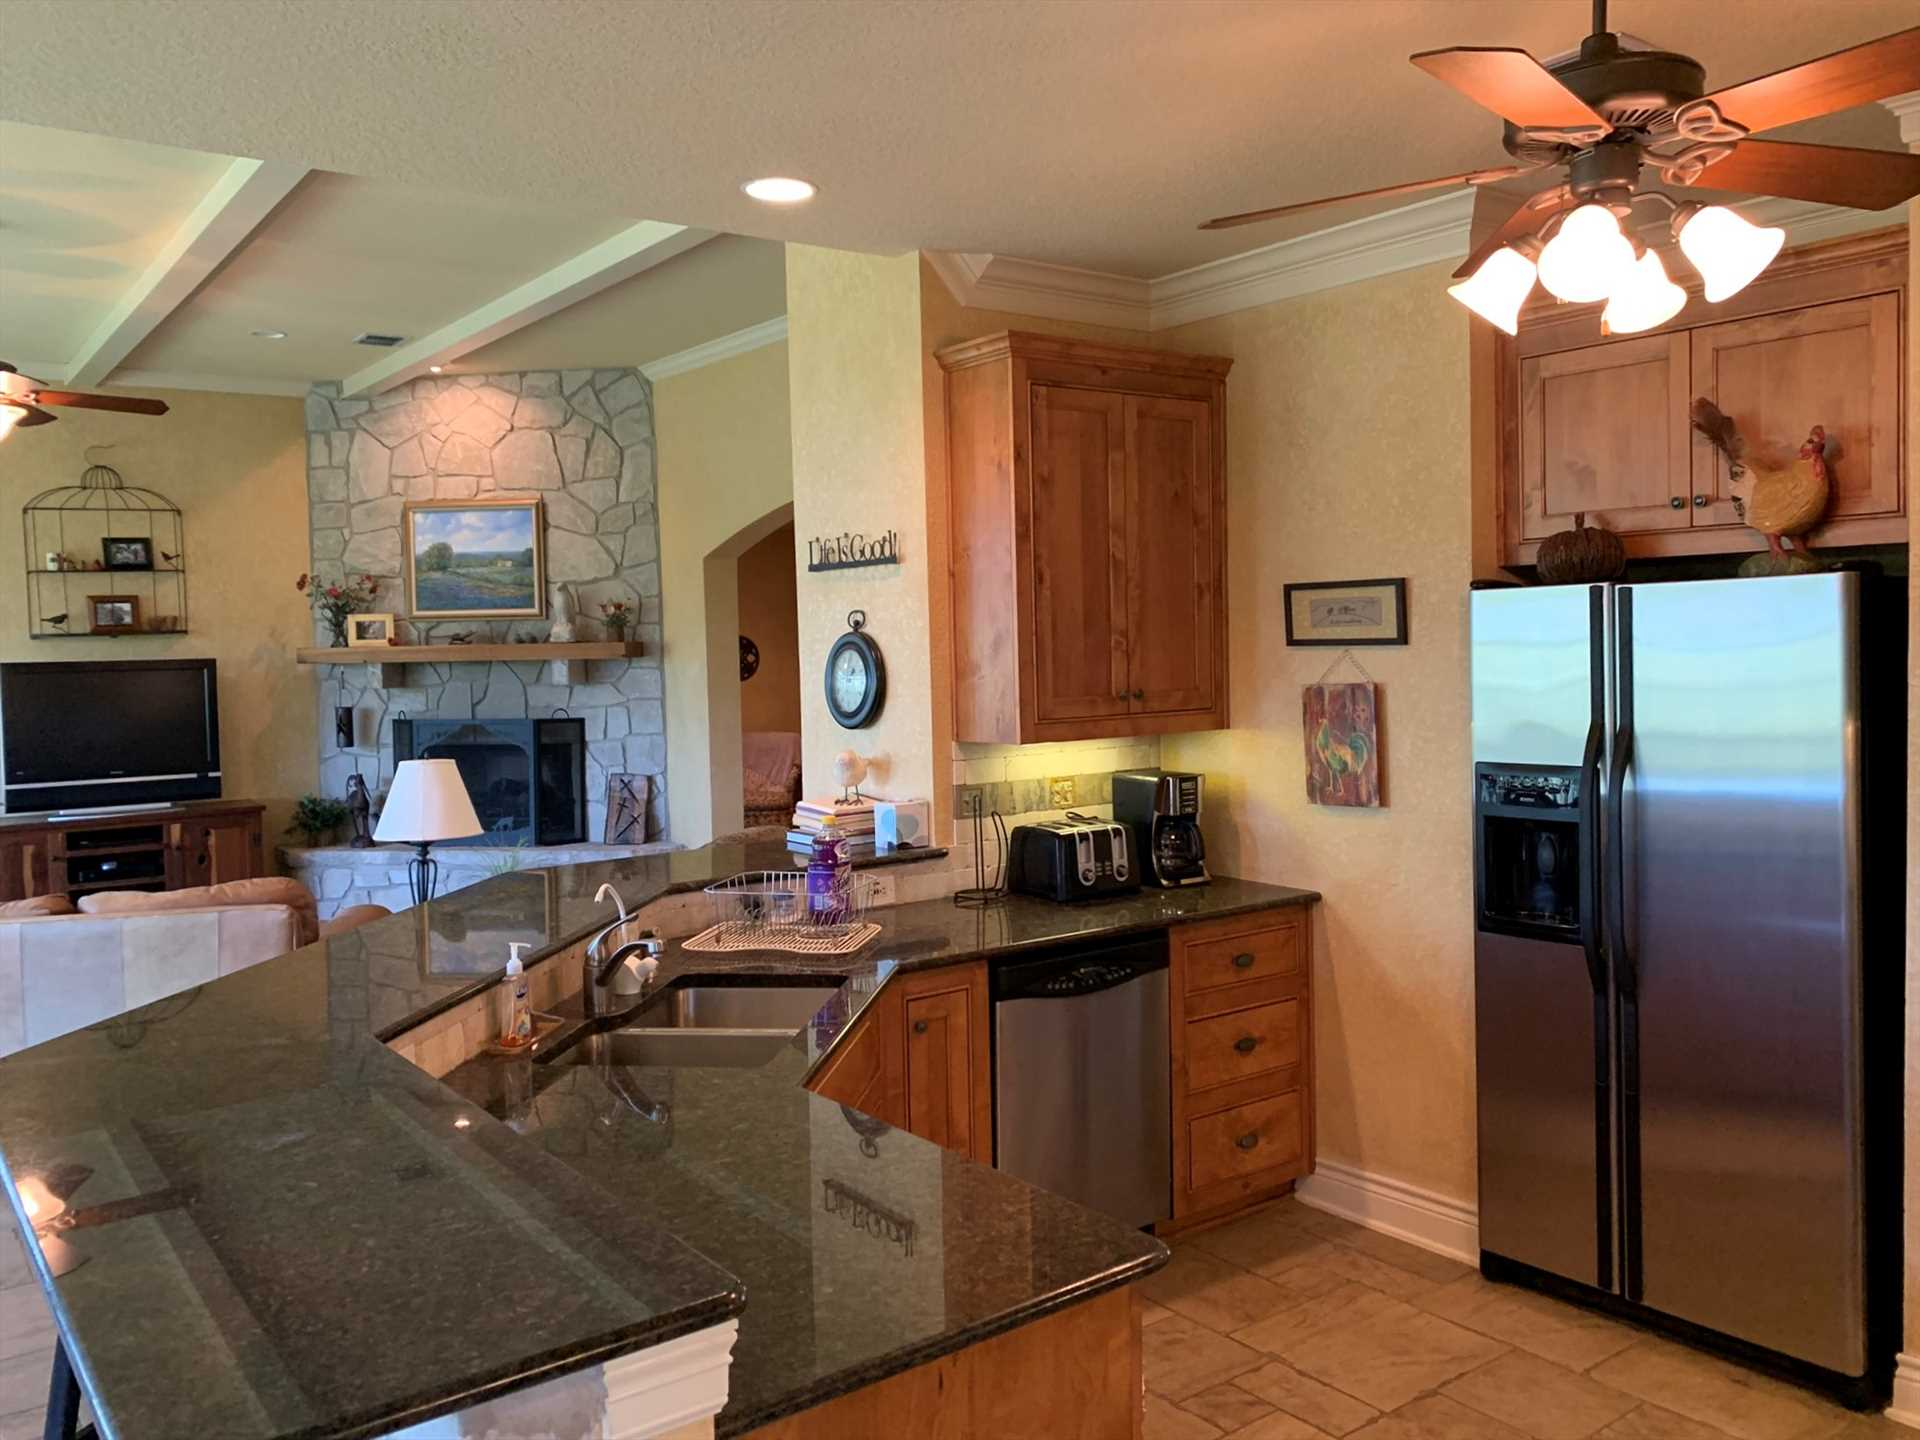 The full and functional kitchen has modern appliances, and all the cooking ware, utensils, glasses, and serving ware to make your meals the best they can be. There's also a charcoal grill out back!